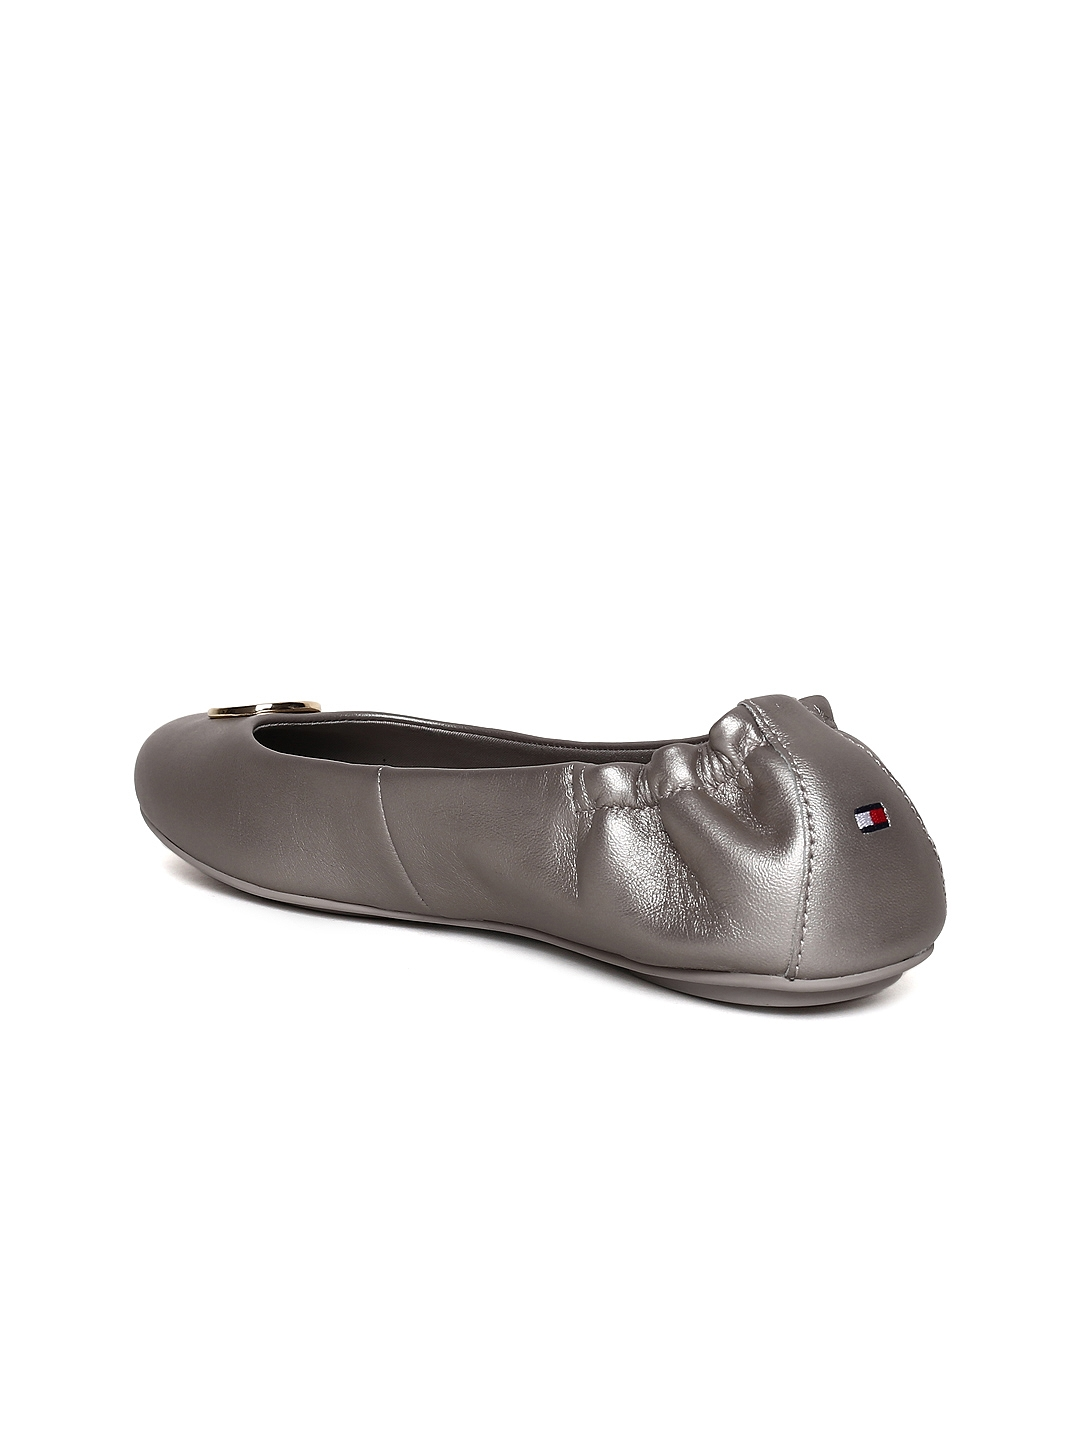 f80192e87 Buy Tommy Hilfiger Women Gunmetal Toned Solid Leather Ballerinas ...